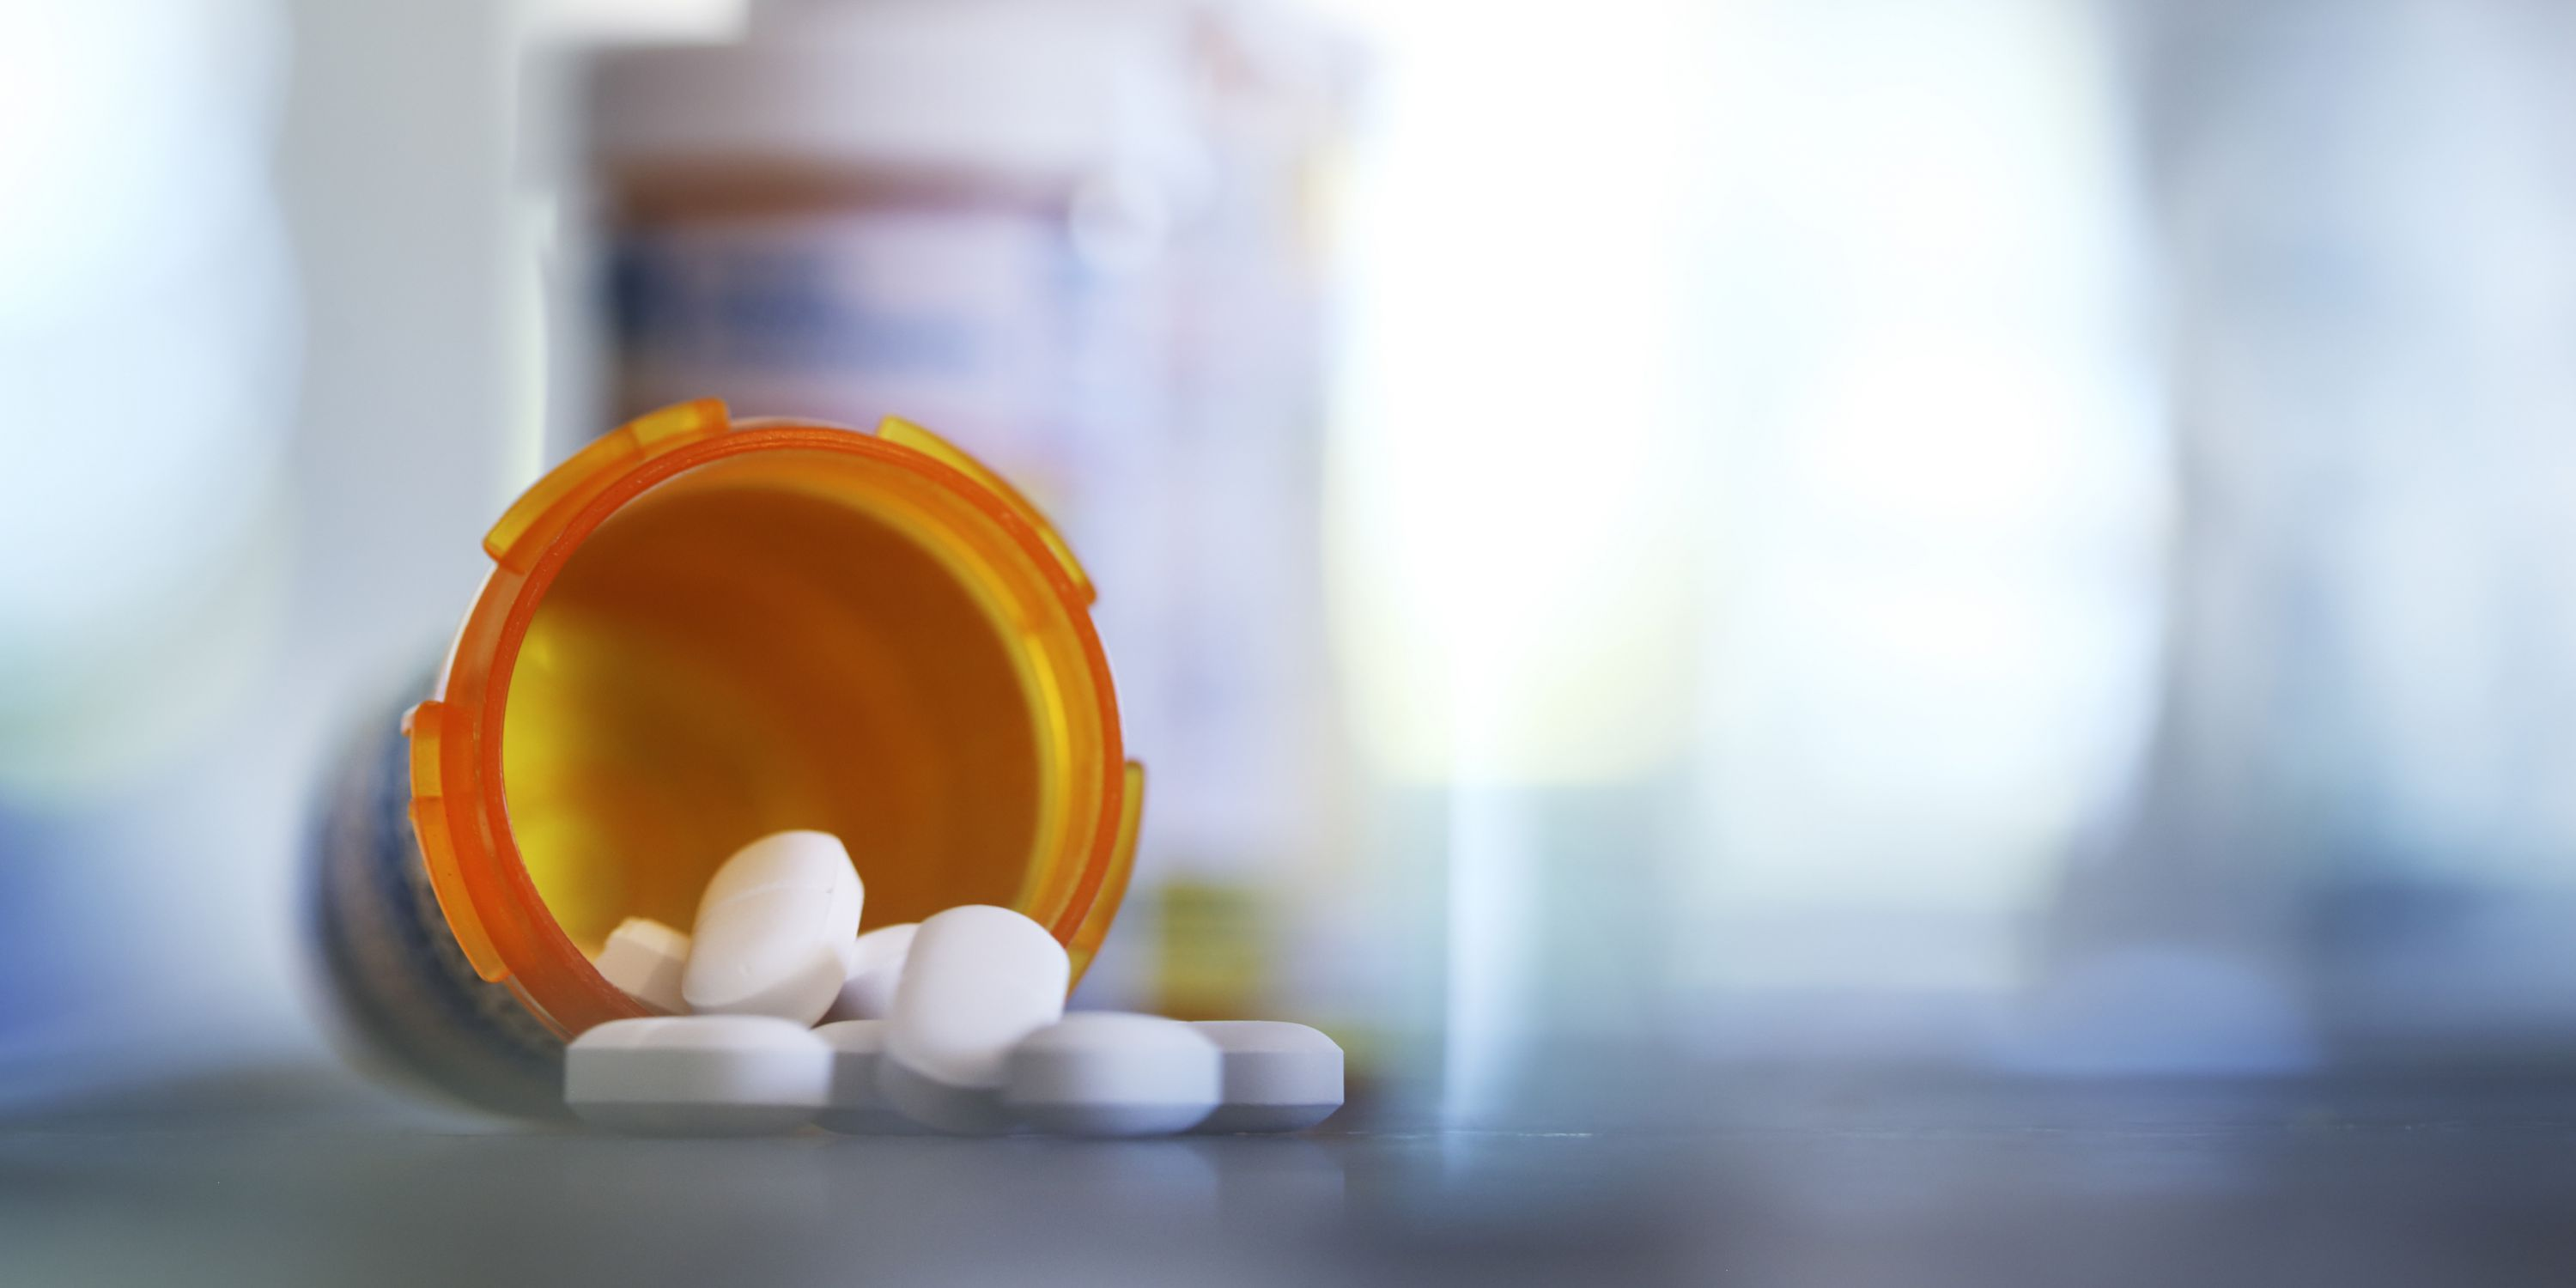 Top Targeted Medications and How to Protect Against Theft